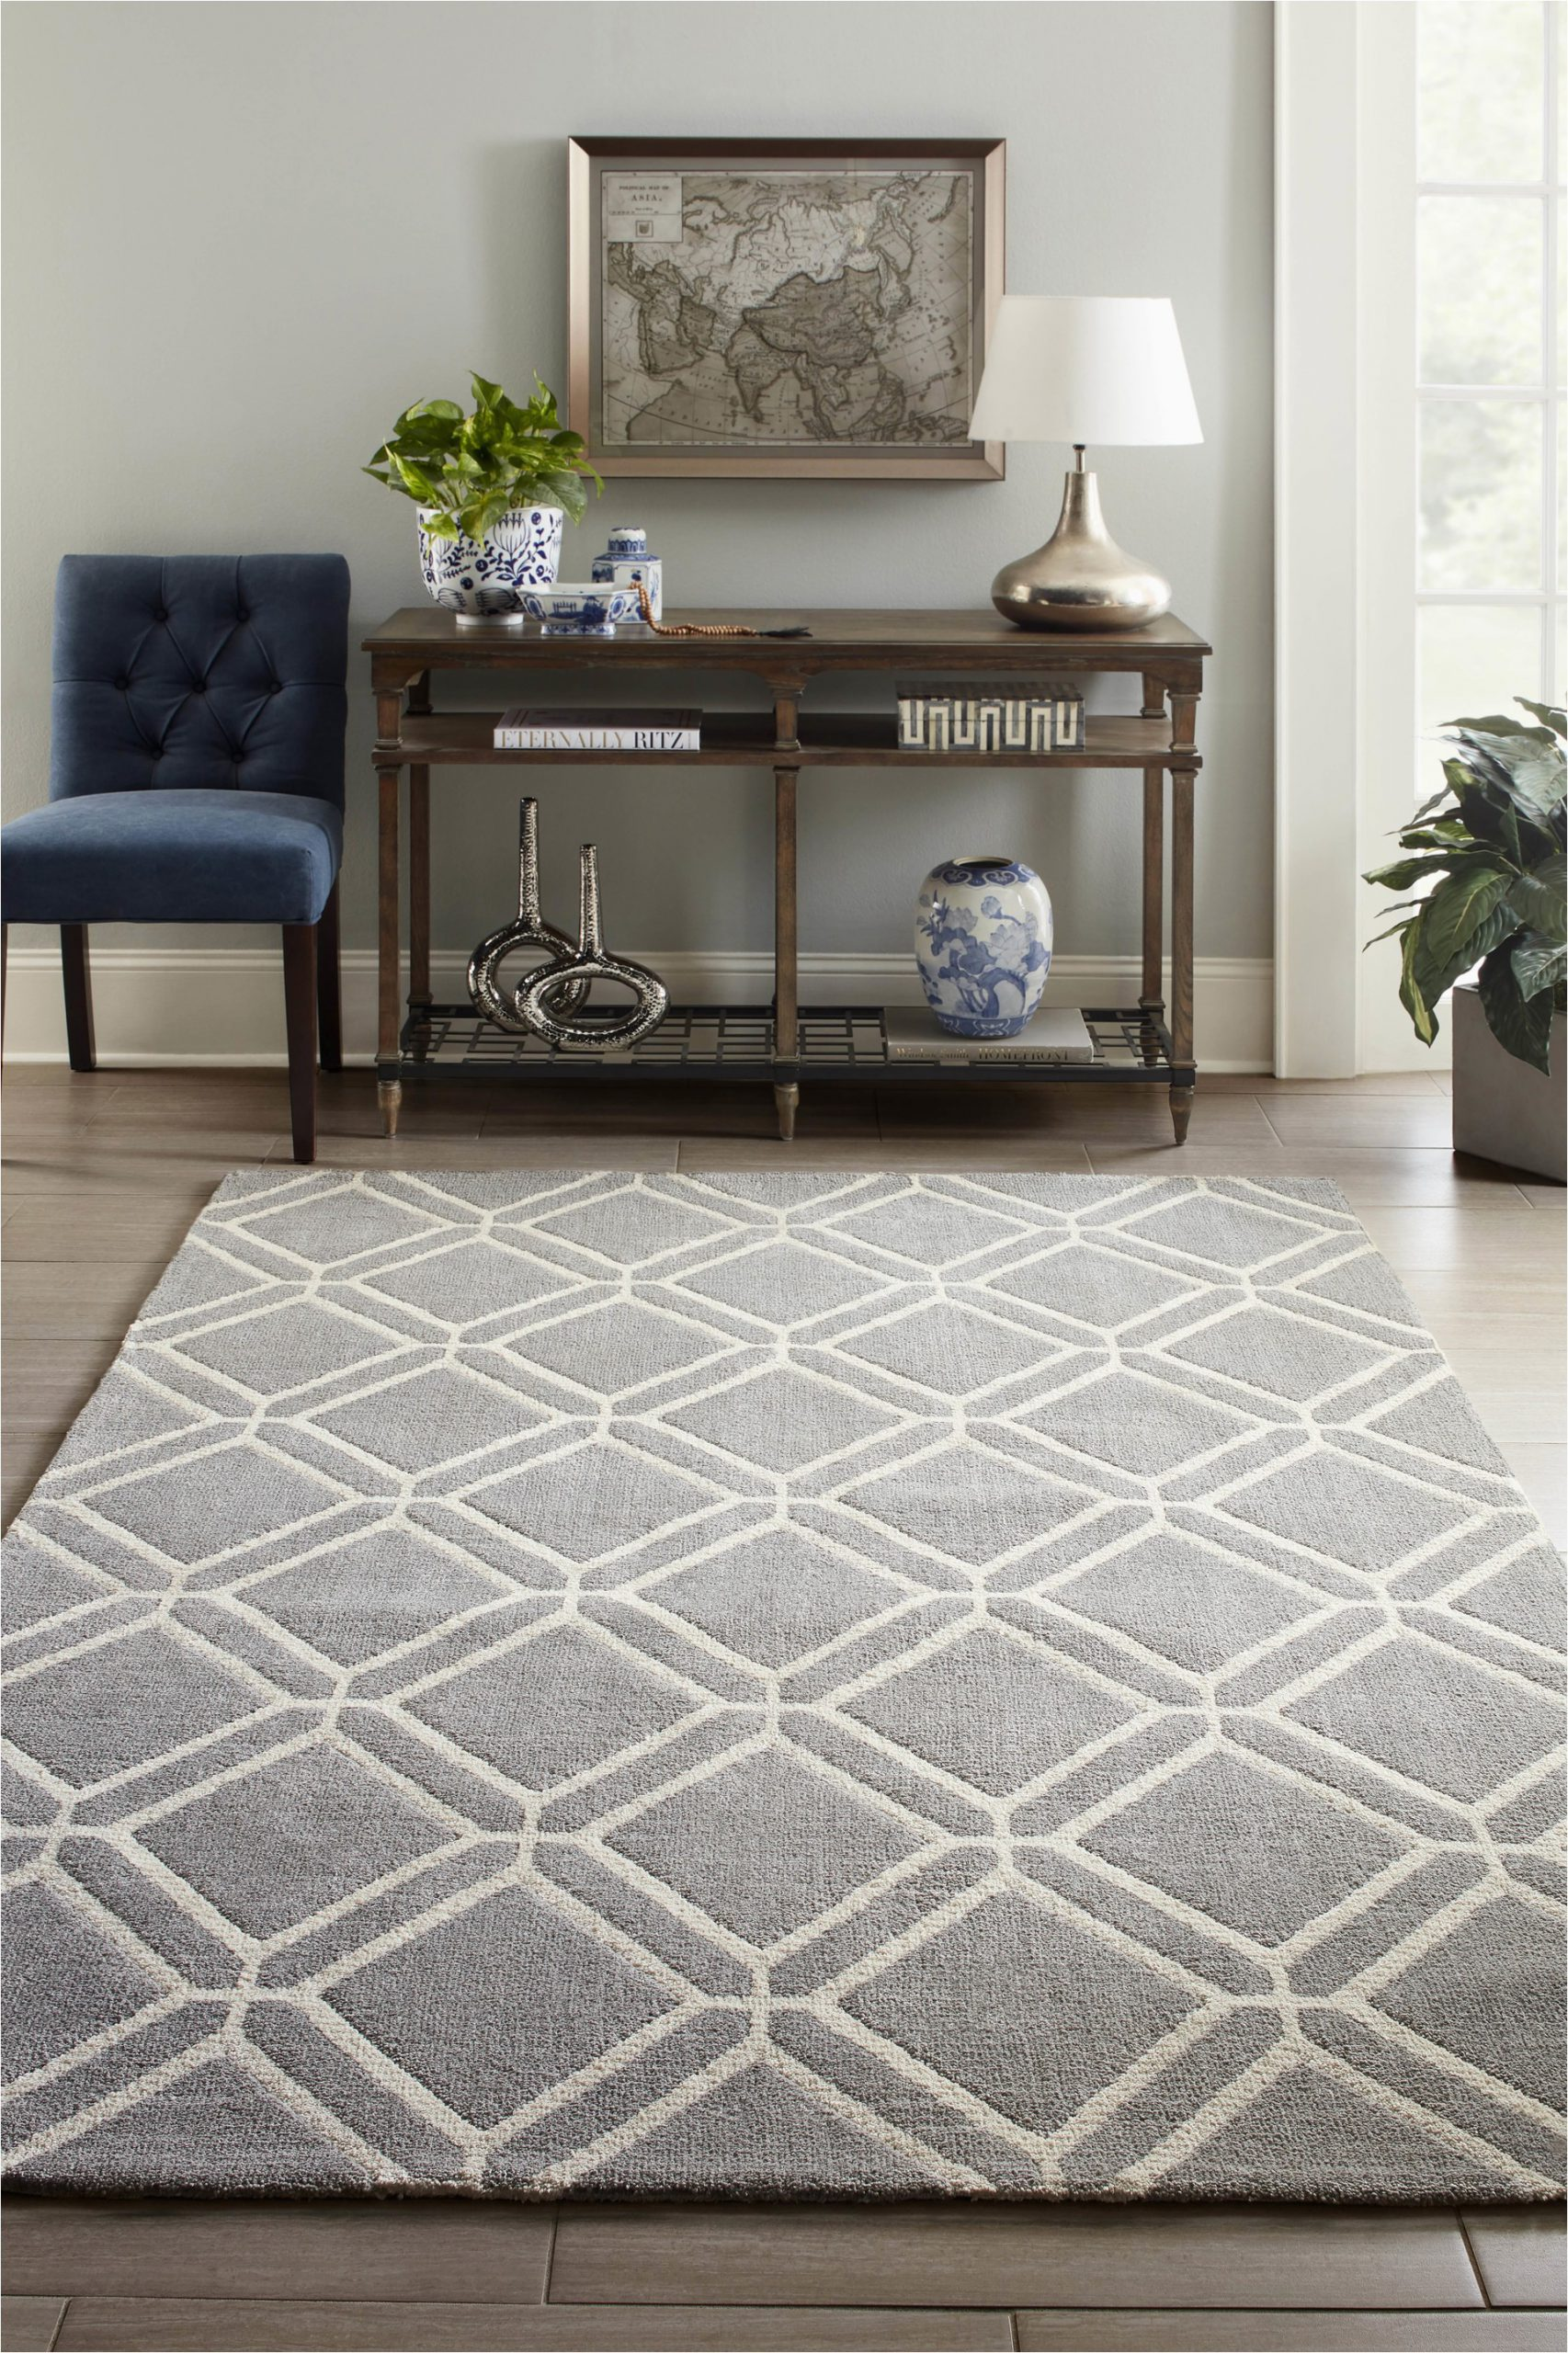 Lowes Allen Roth area Rugs Allen Roth Shae 8 X 10 Grey Indoor Geometric Mid Century Modern area Rug